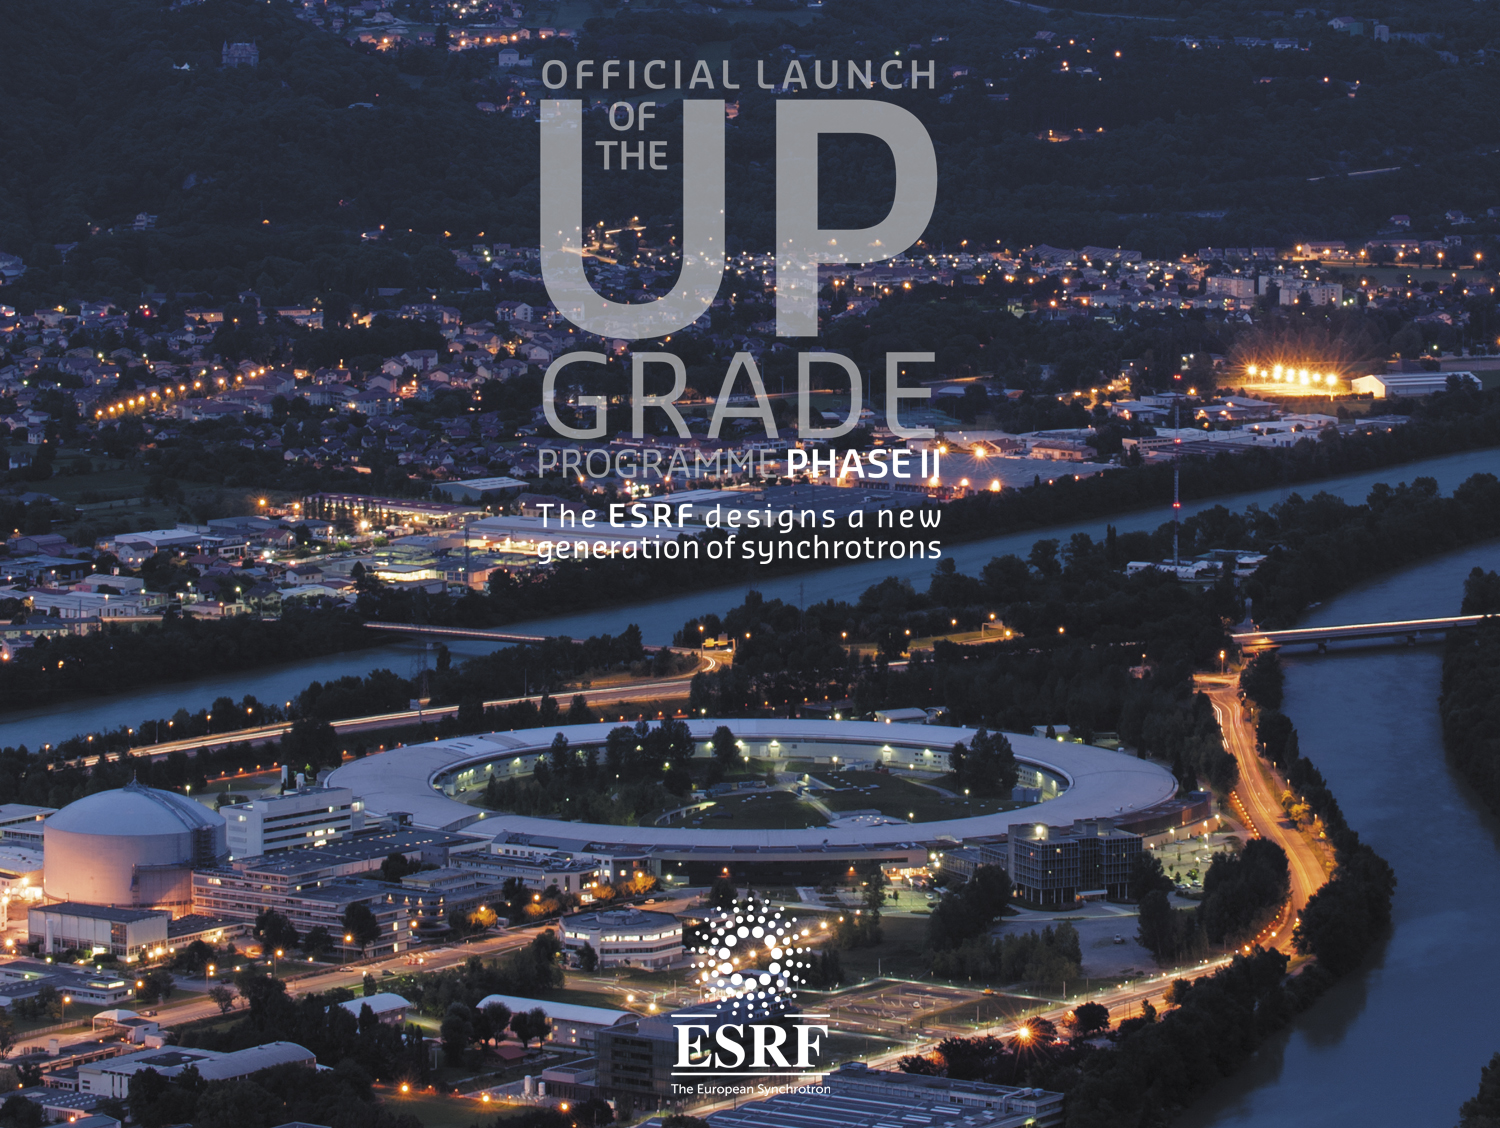 PPT-ESRF-upgrade-UK.jpg